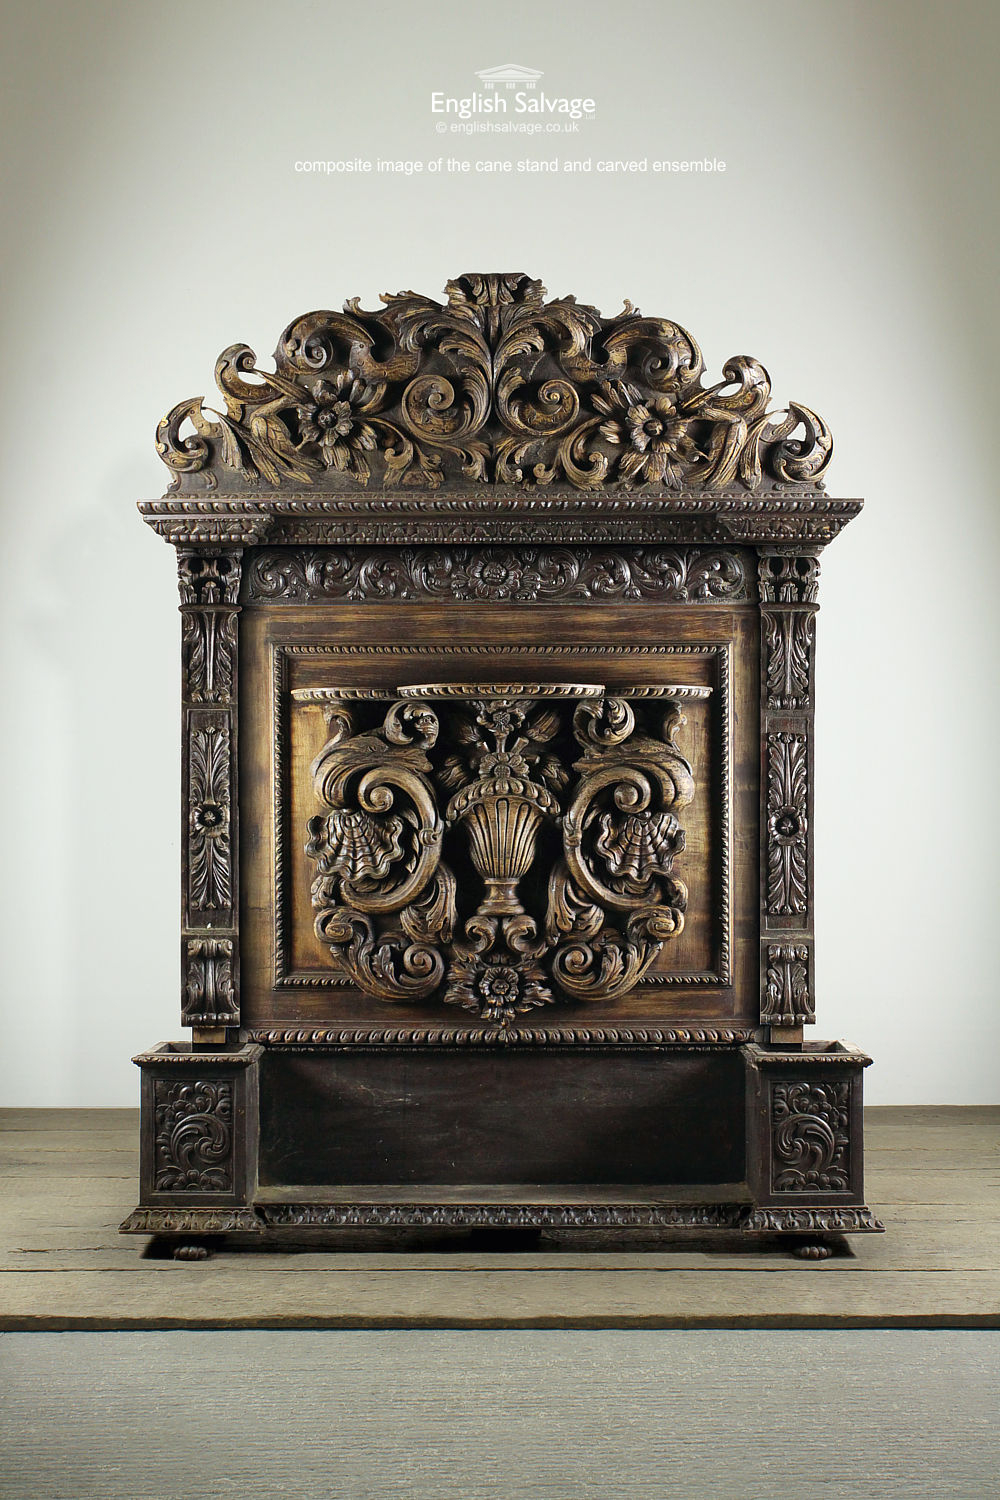 Salvaged Carved Pediment Shelf Cane Stand